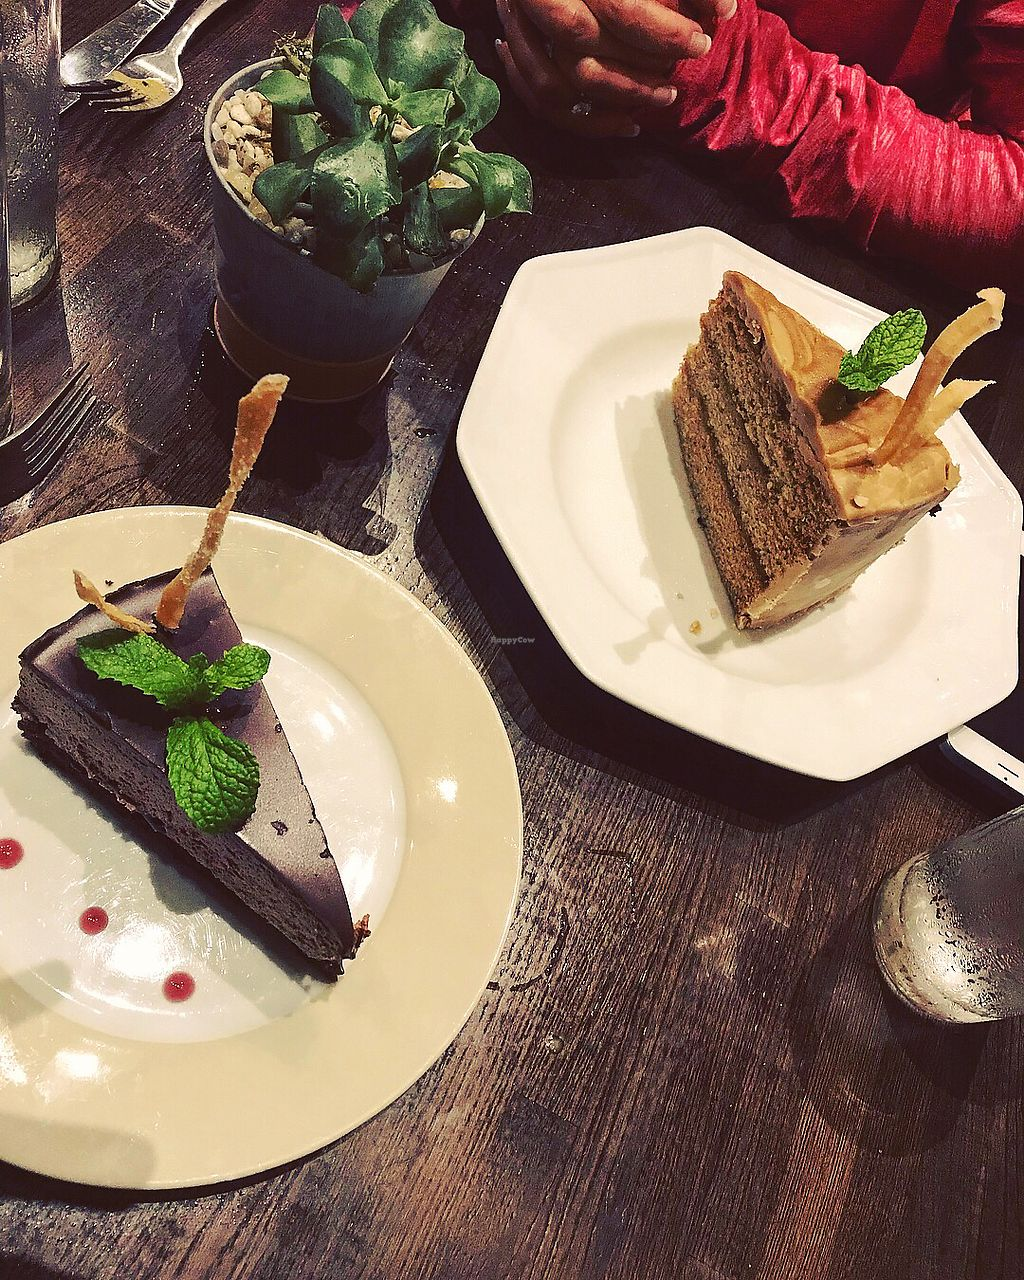 "Photo of Herban Fix Vegan Kitchen  by <a href=""/members/profile/ToriEdwards"">ToriEdwards</a> <br/>Chocolate mousse with Raspberry and Caramel Cake   <br/> November 8, 2017  - <a href='/contact/abuse/image/60802/323183'>Report</a>"